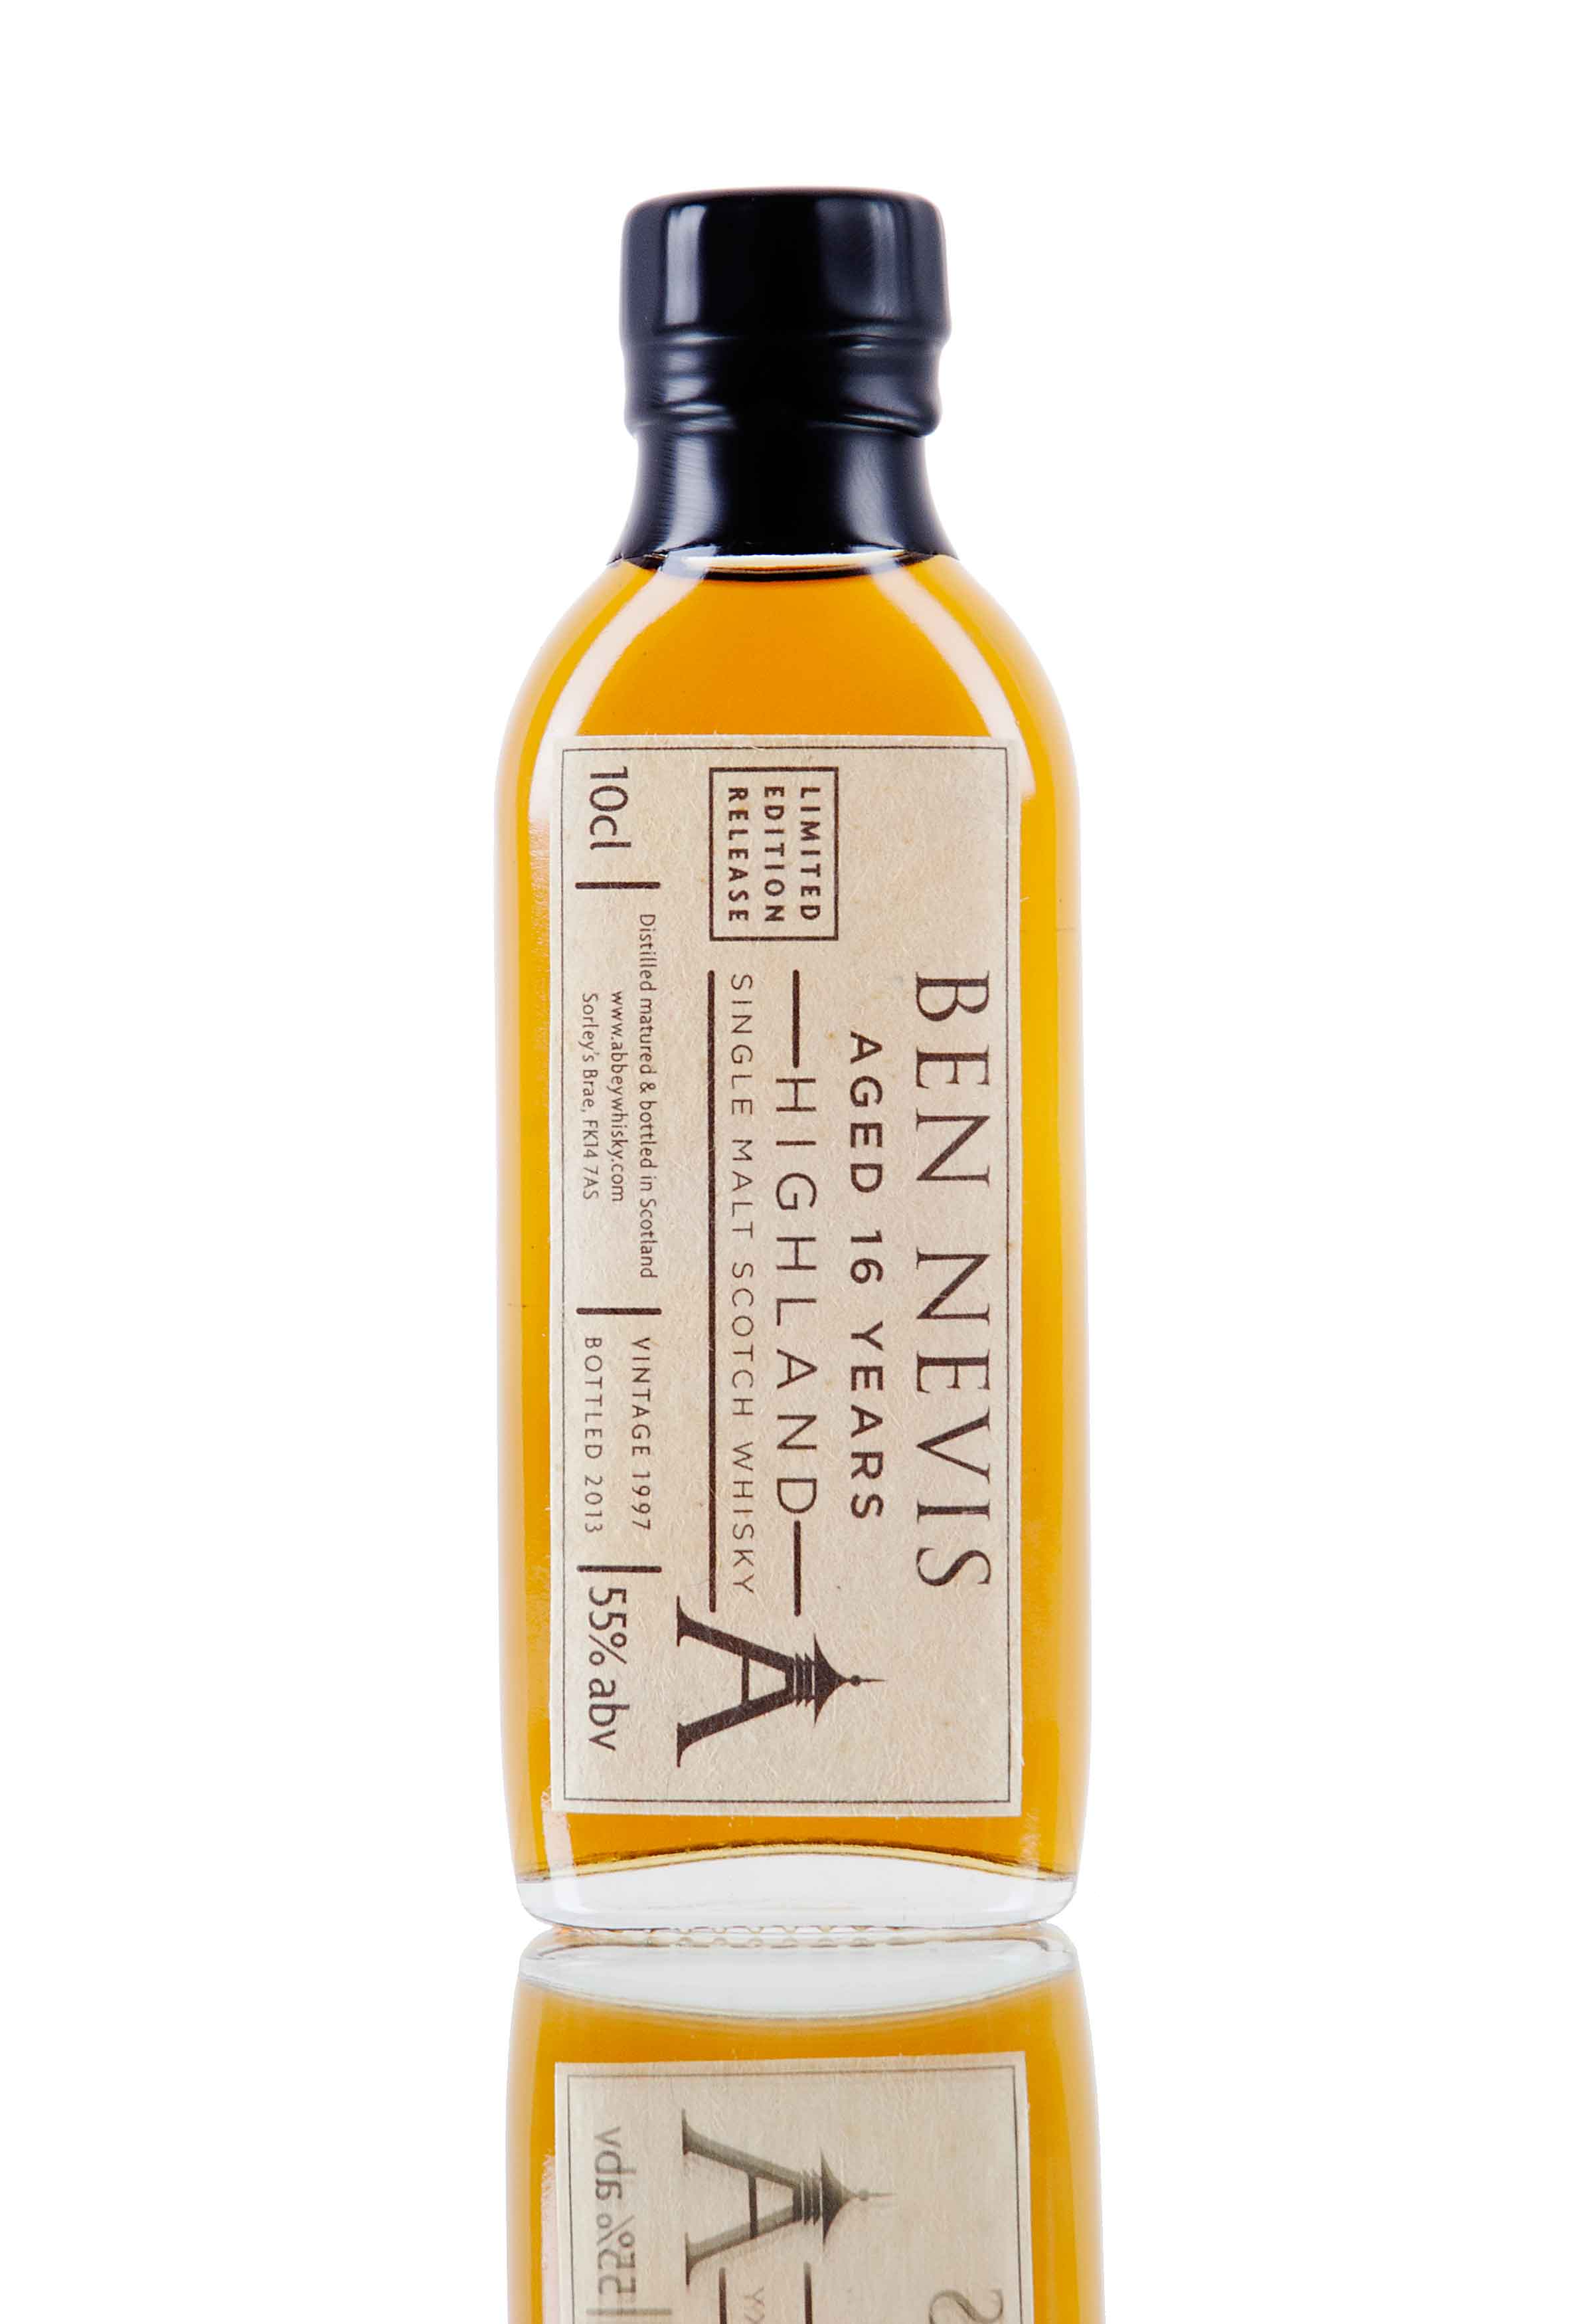 Ben Nevis 16 Year Old - The Rare Casks / 10cl Sample